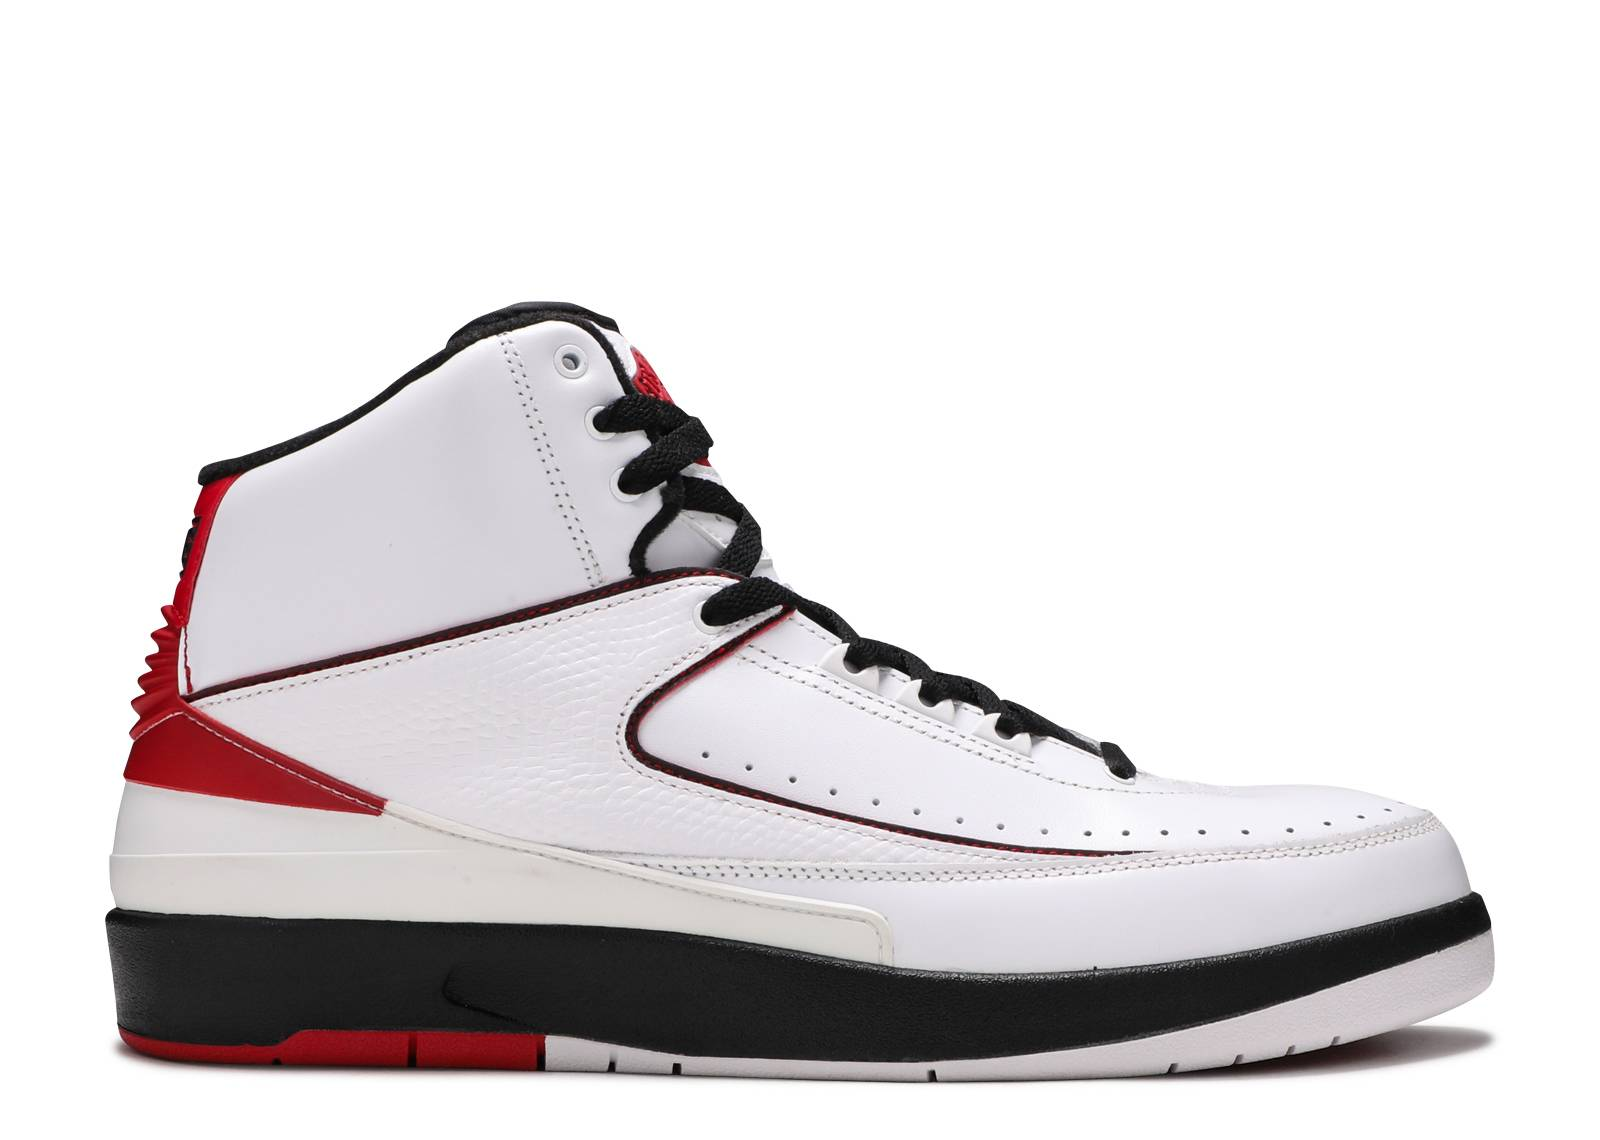 038f8ce34f75 Air Jordan 2 (II) Shoes - Nike